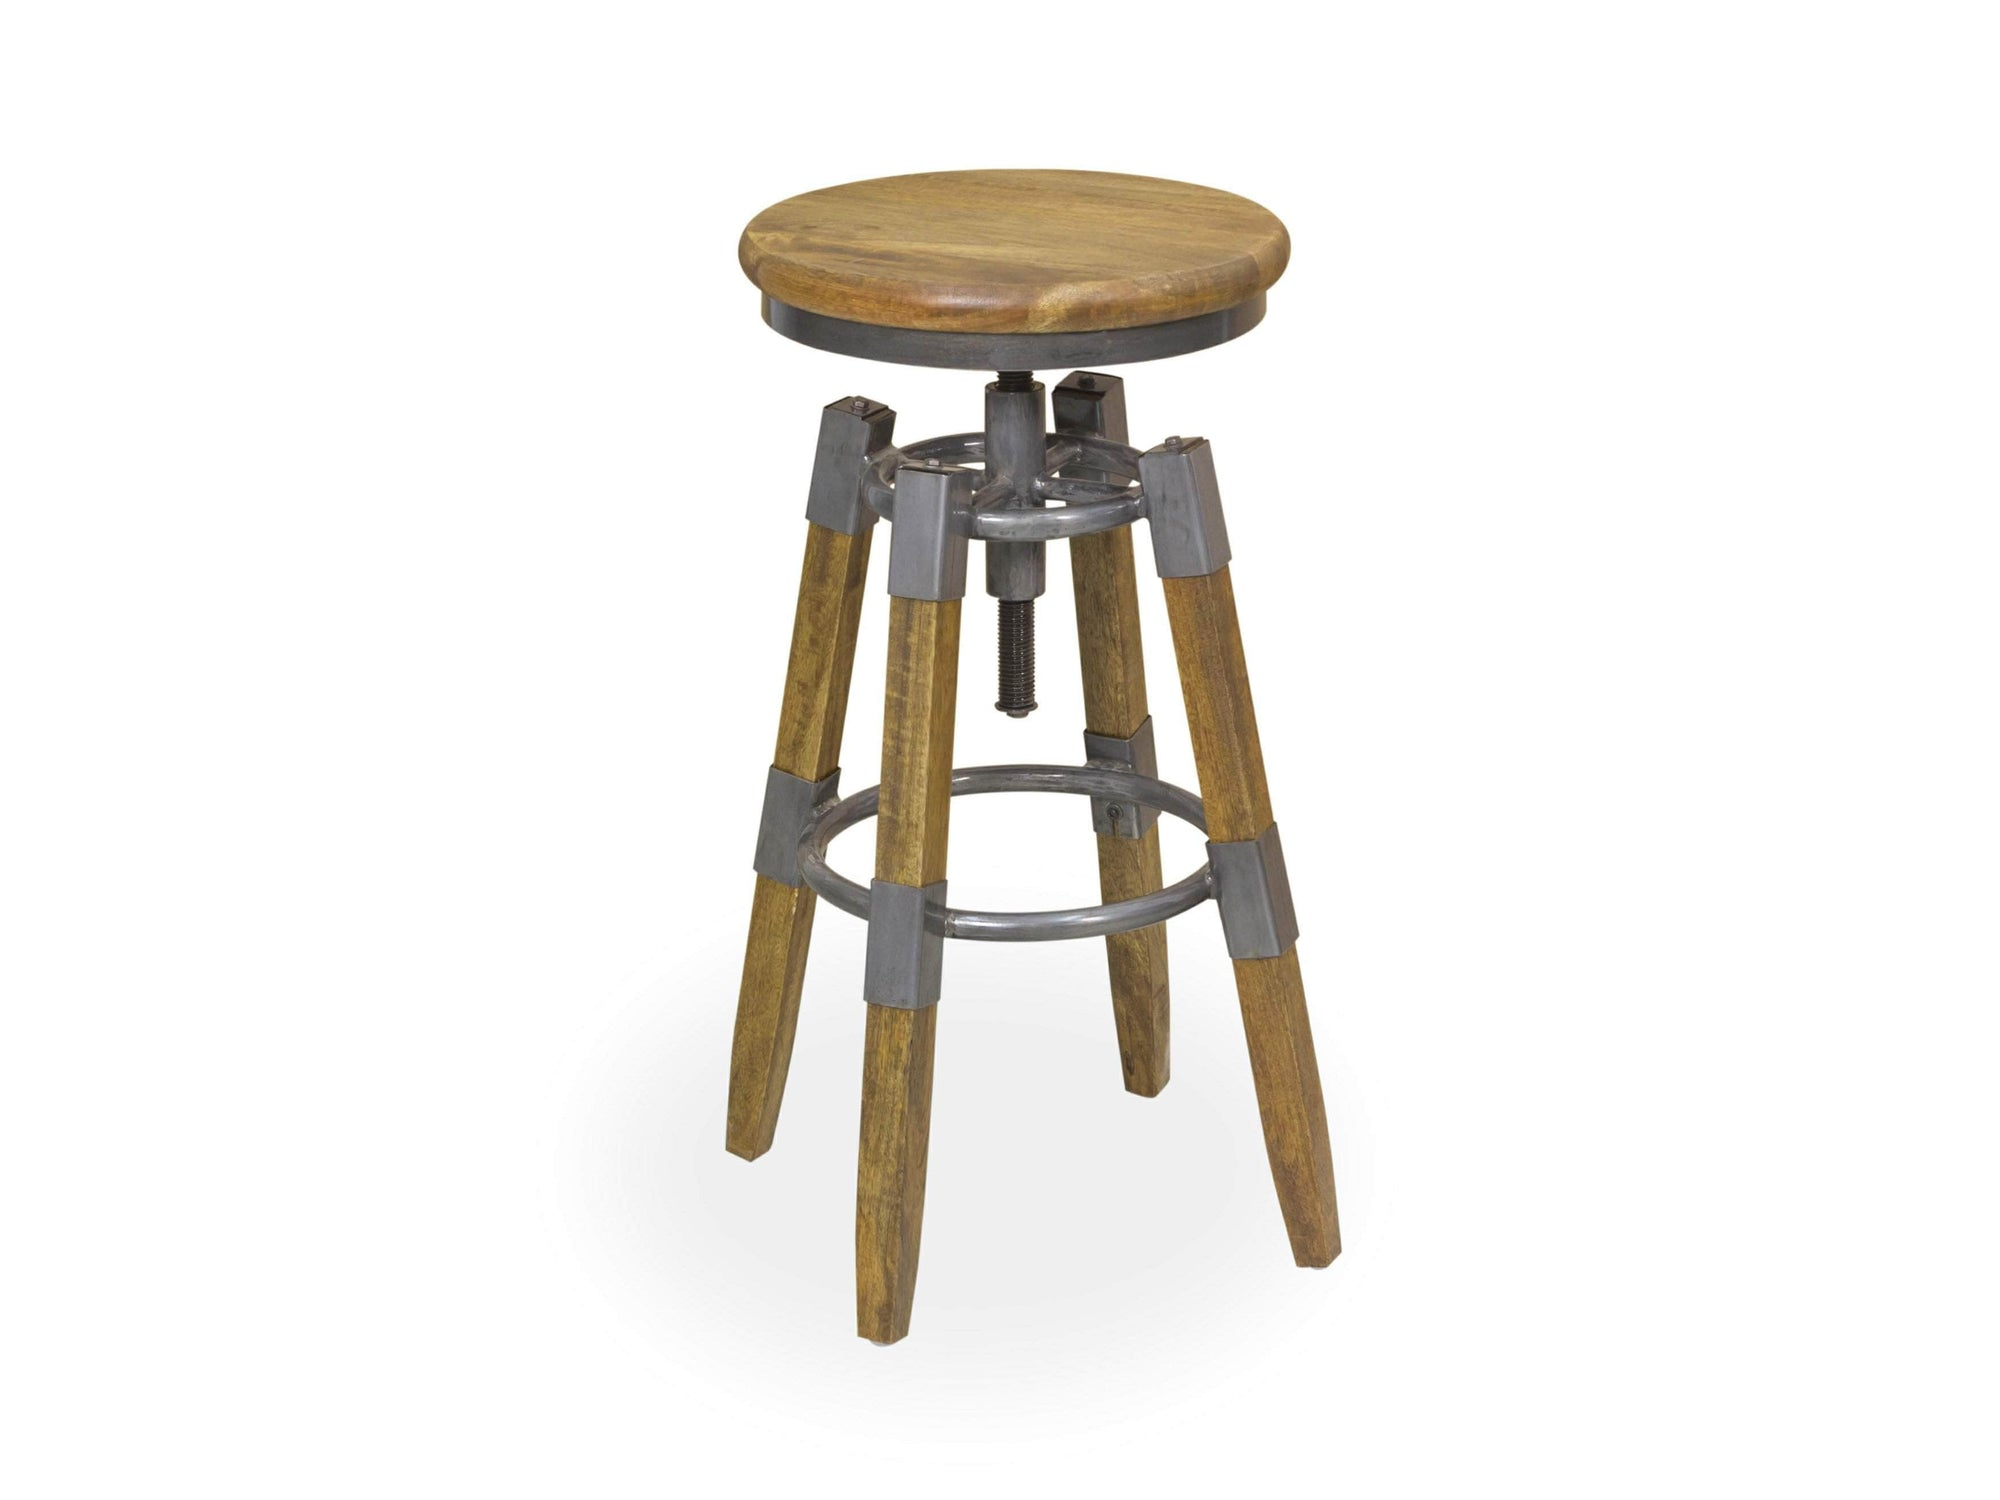 Four legged industrial-inspired stool with core screw for adjustable seat height